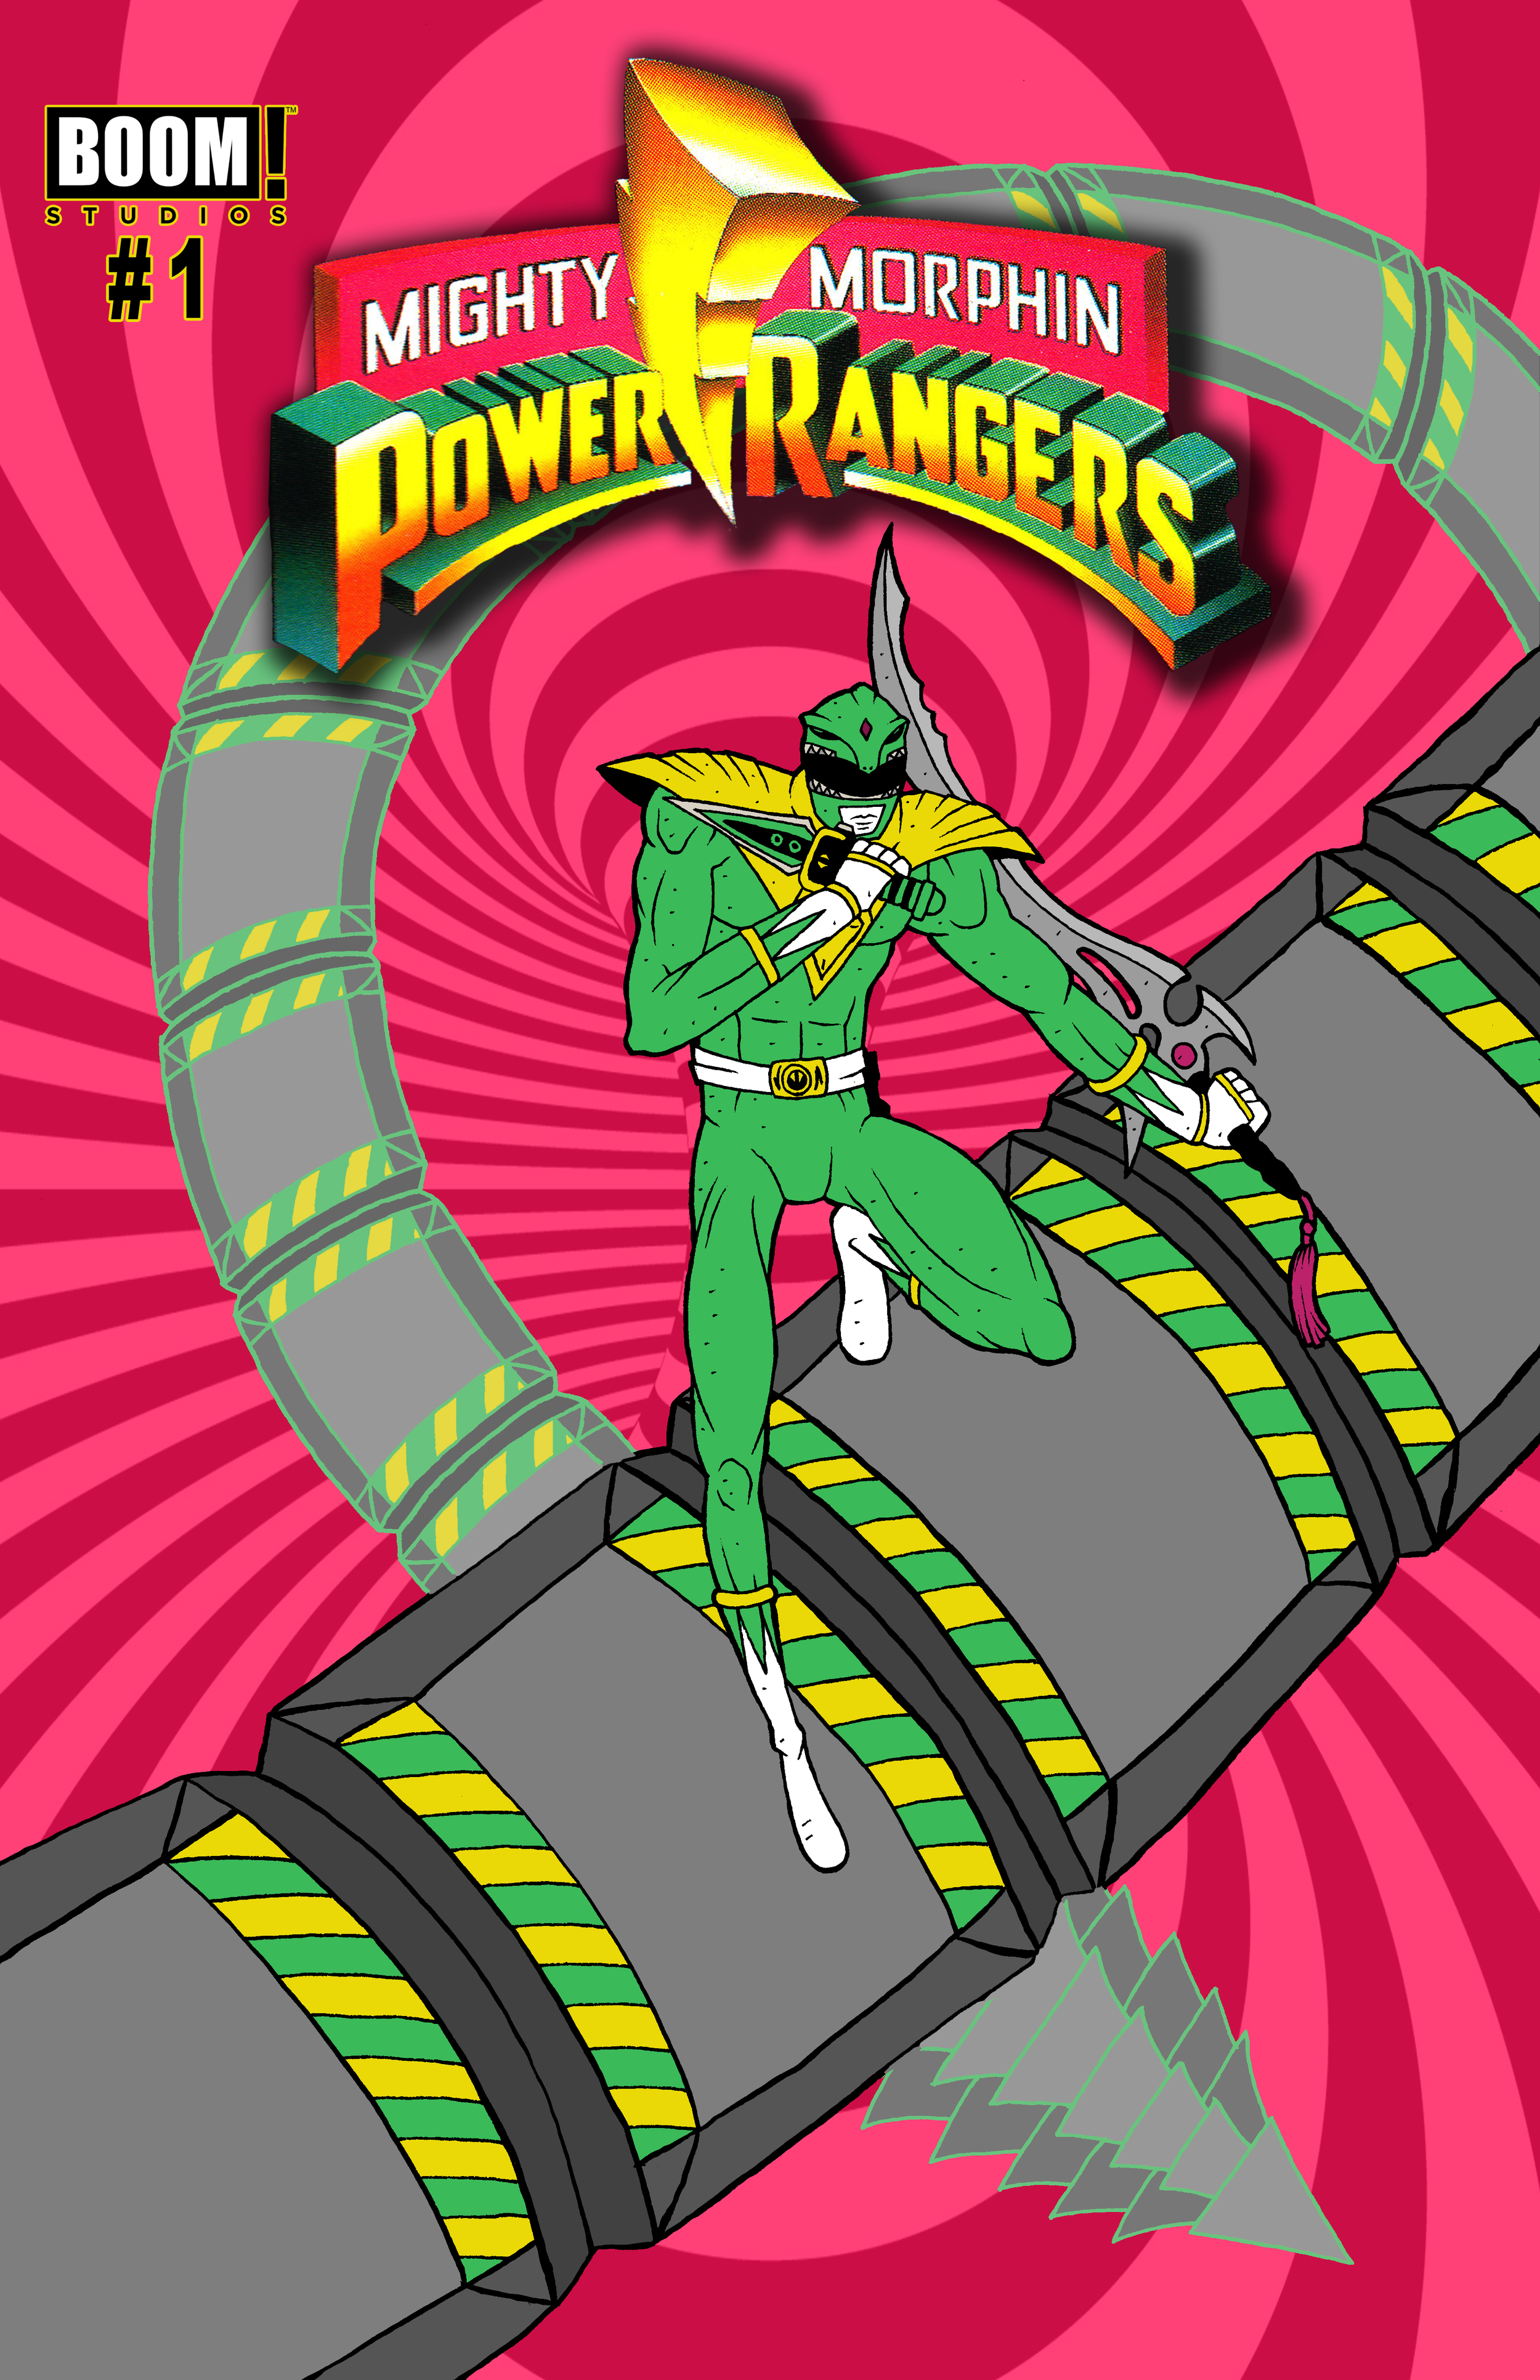 Cover_PowerRangers.png